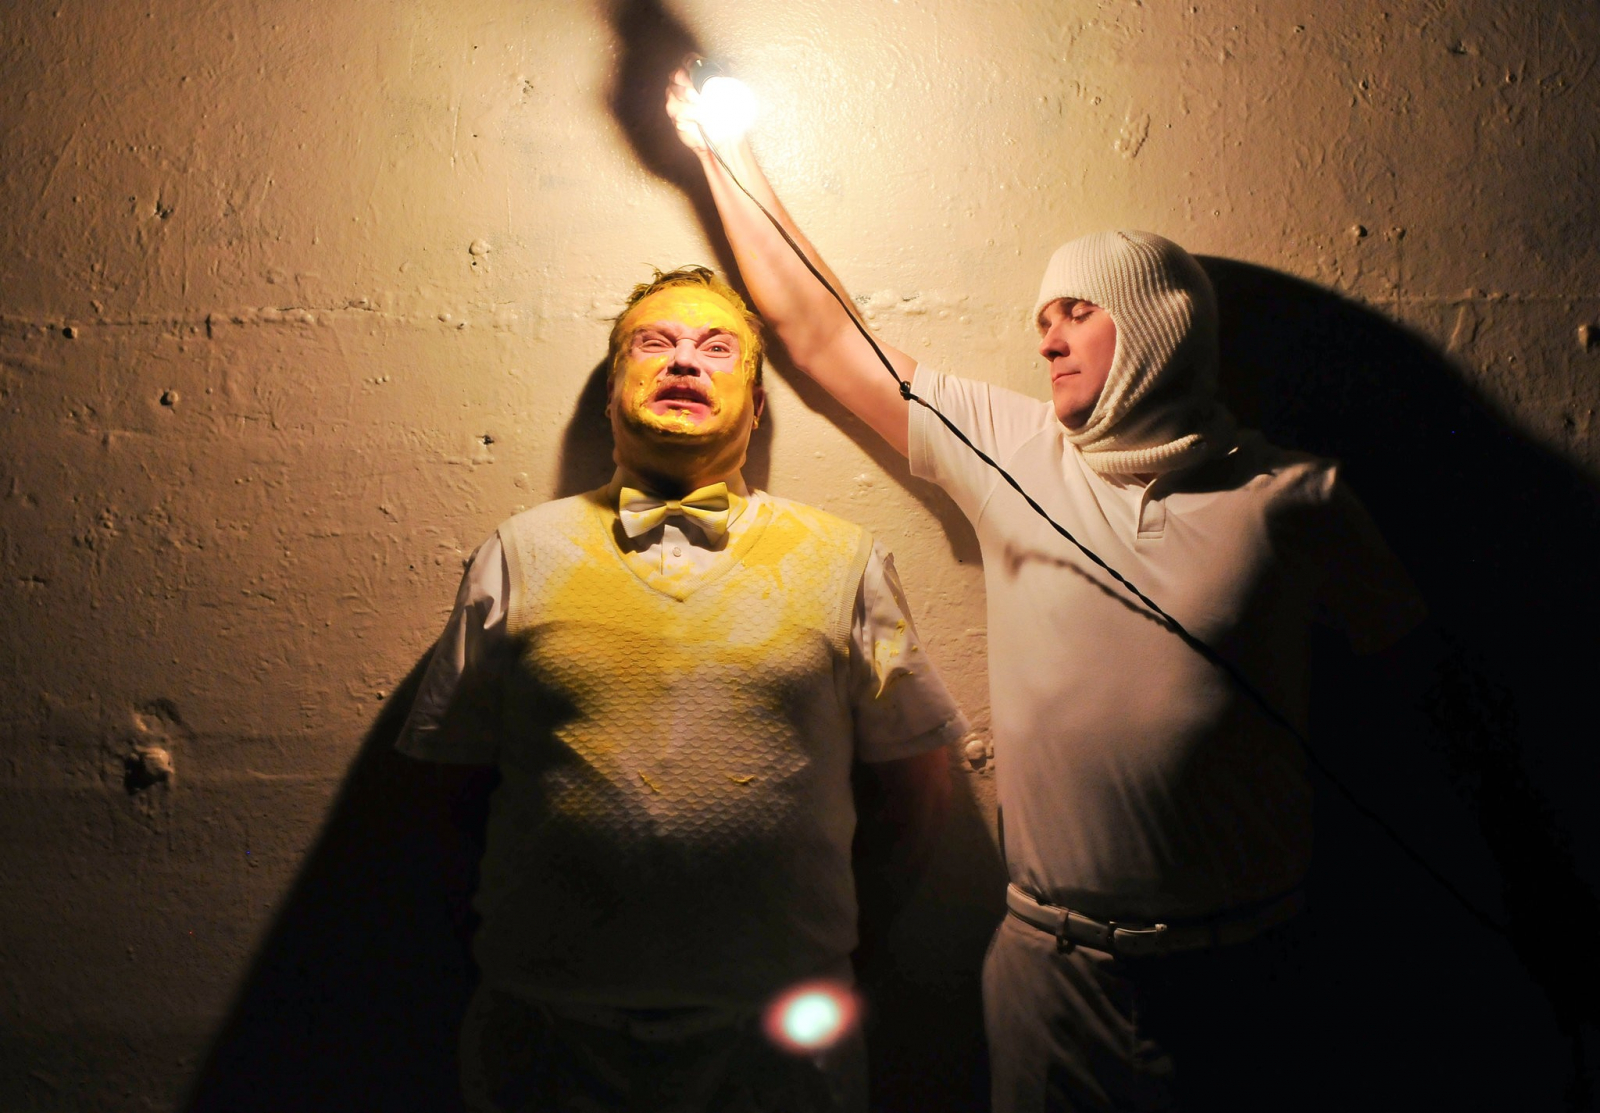 Actors, Edmund Lewis and Eric Tucker at a wall one with yellow paint on his face, the other holding a lightbulb